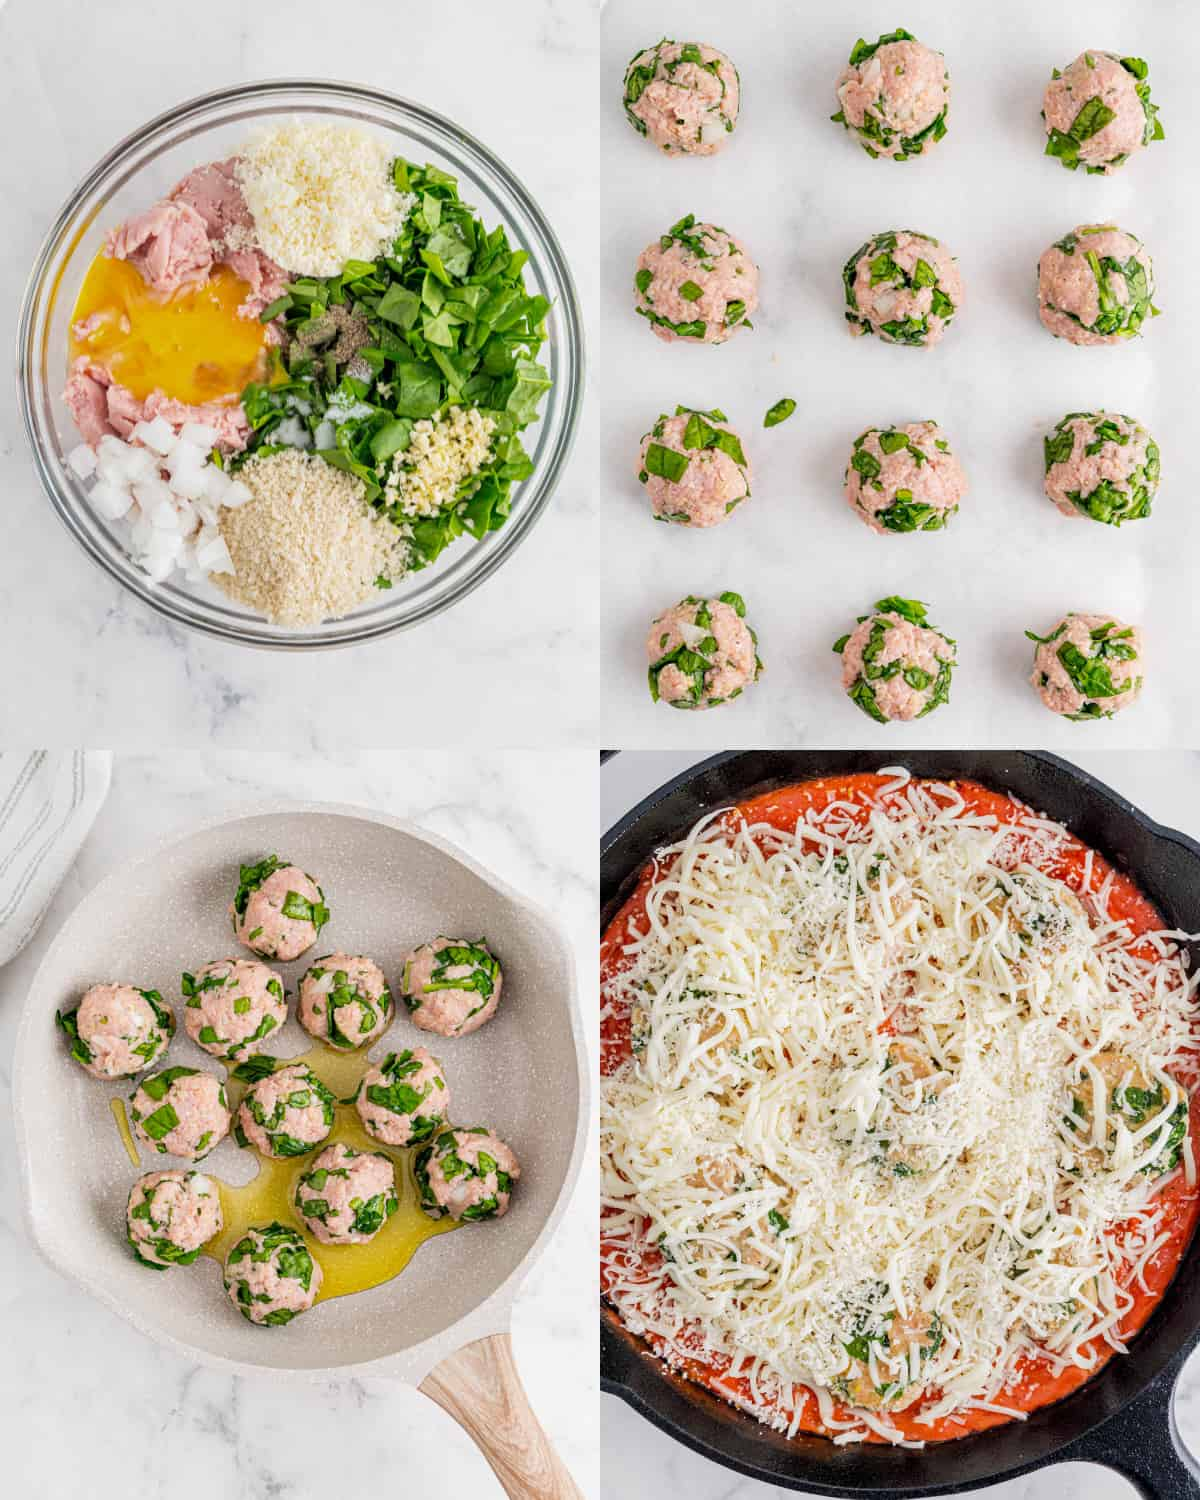 mixing together the ingredients for meatballs in a bowl and then cooking in a skillet